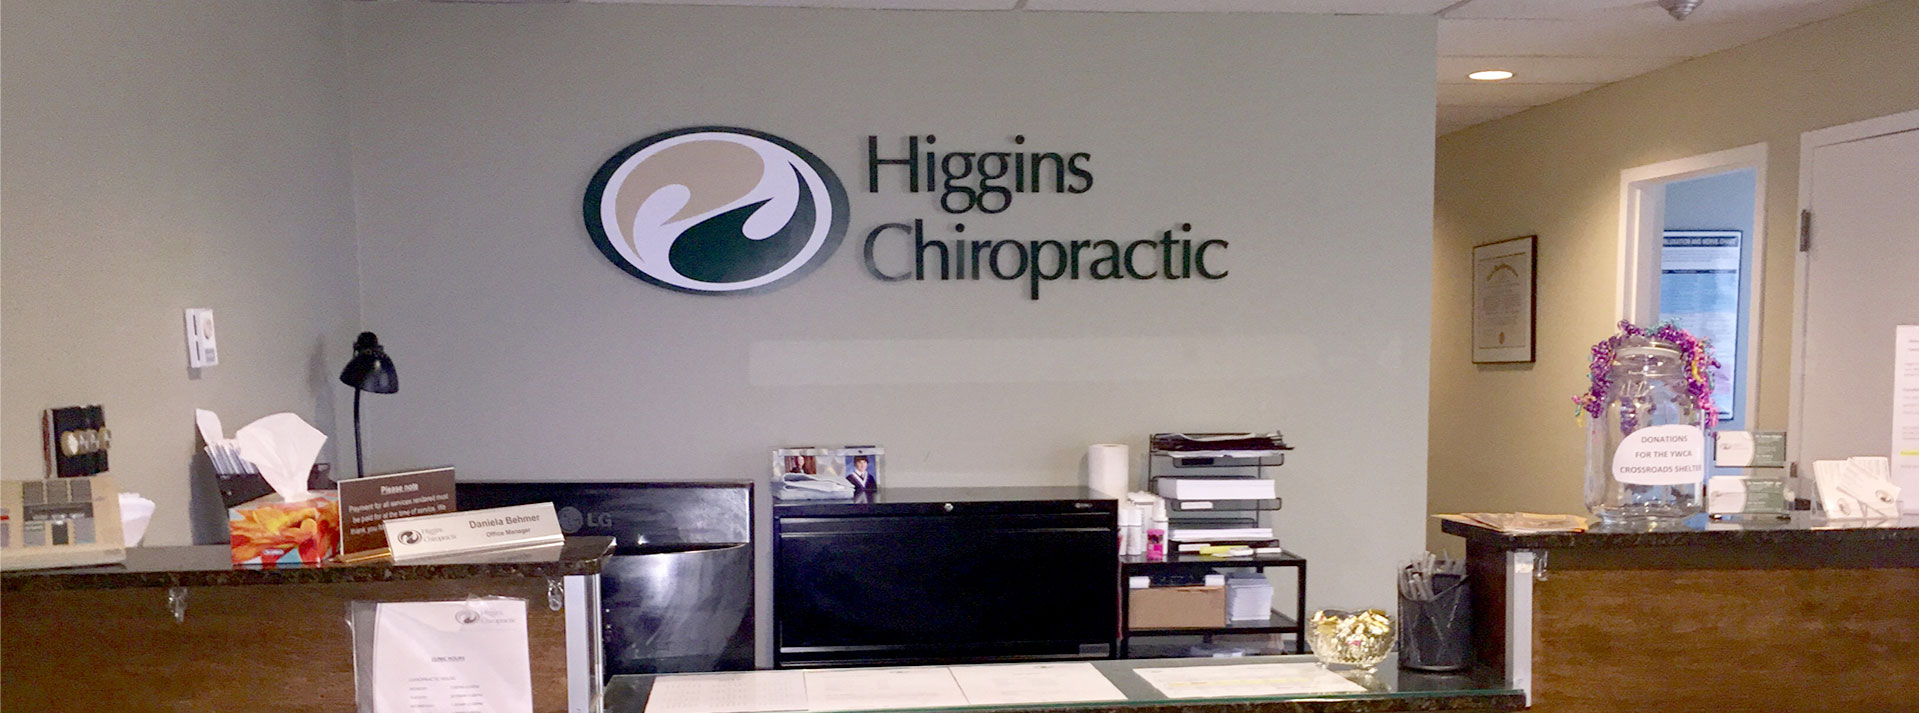 Discover Higgins Chiropractic...